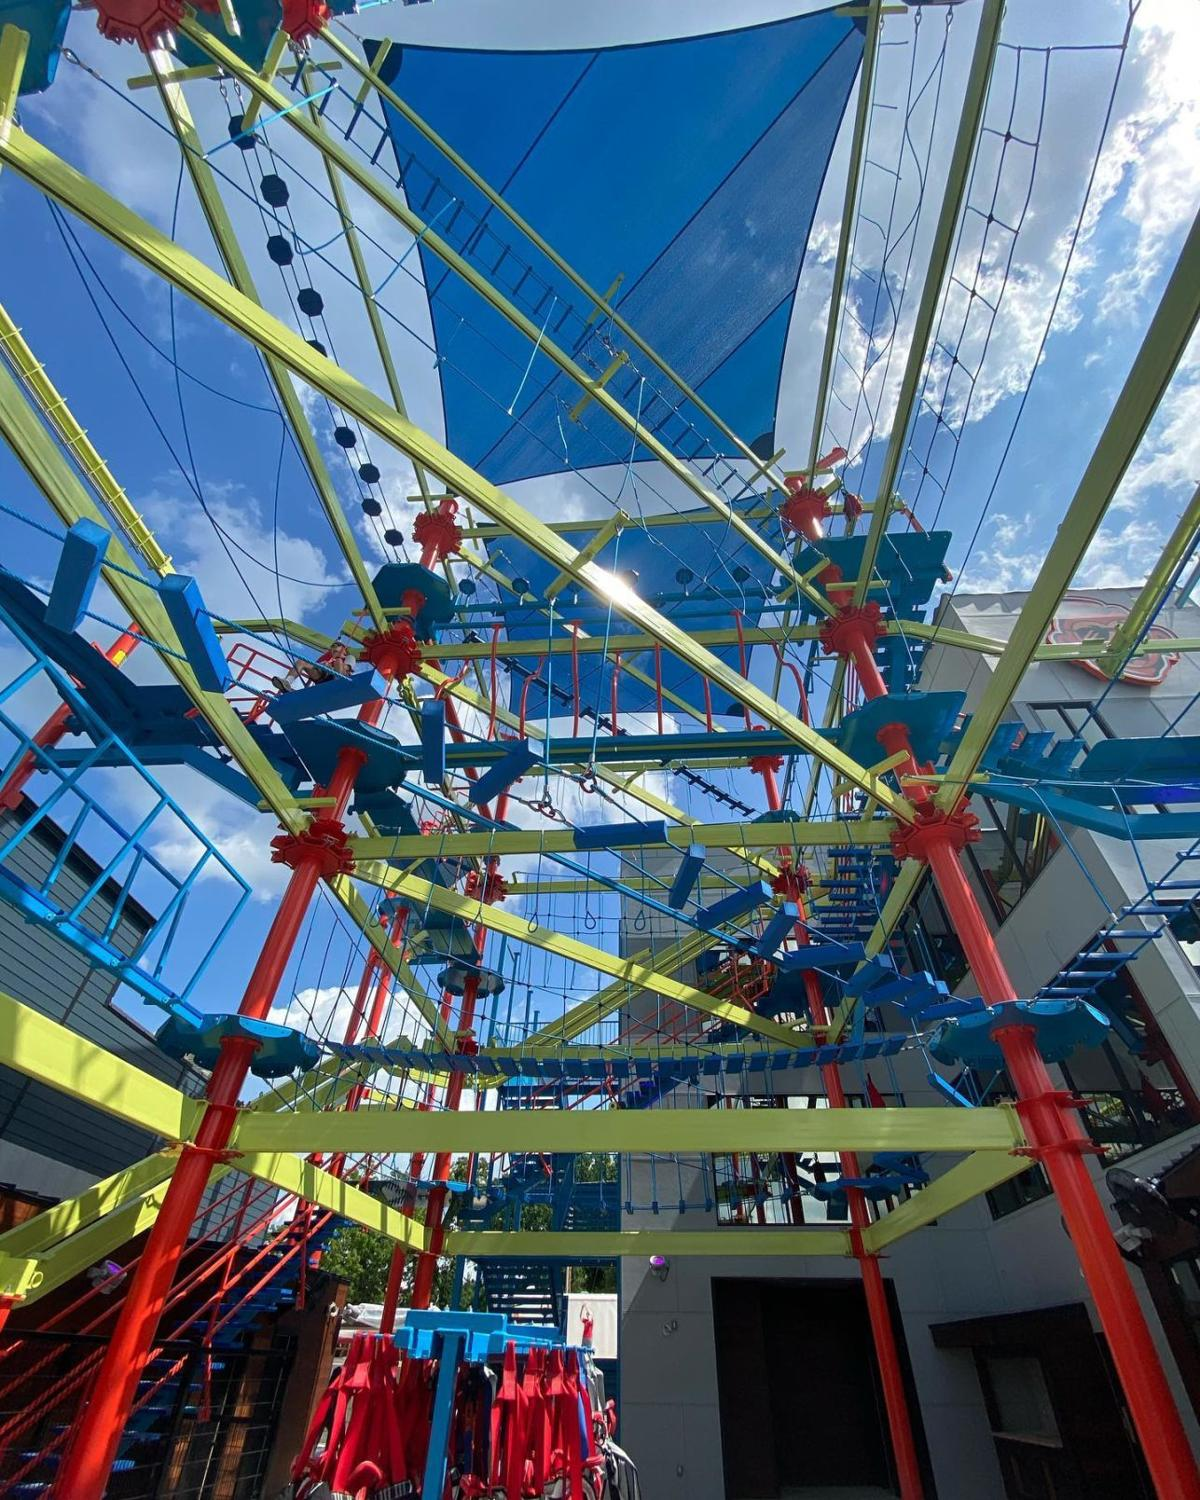 The Malted Monkey Ropes Course